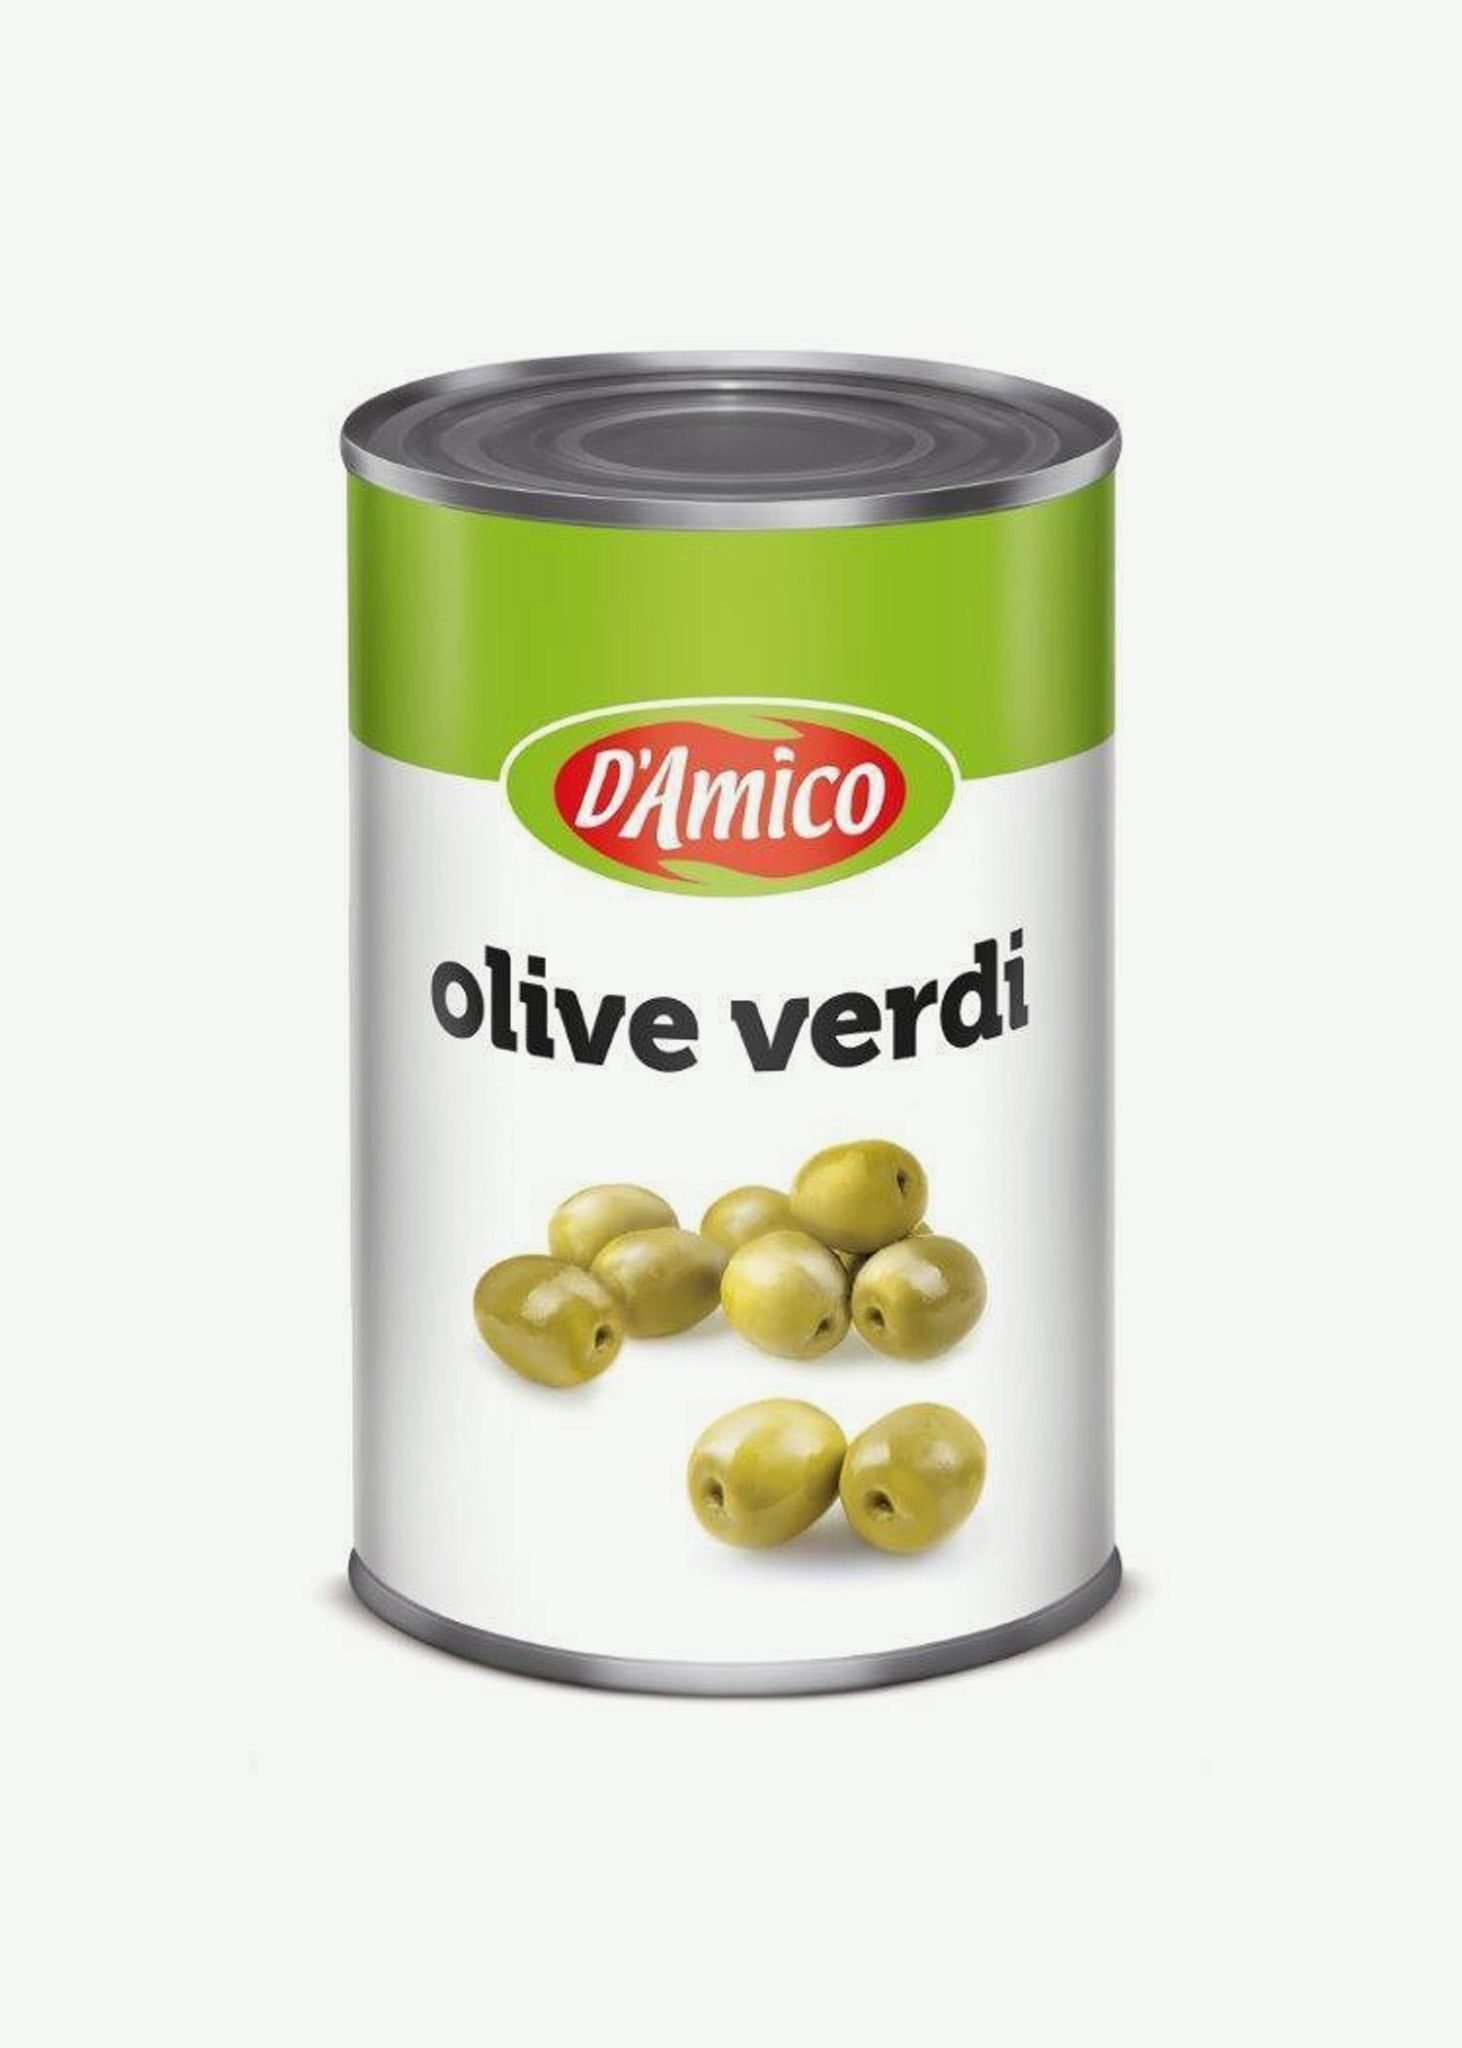 D'amico Giant Olives 2500g